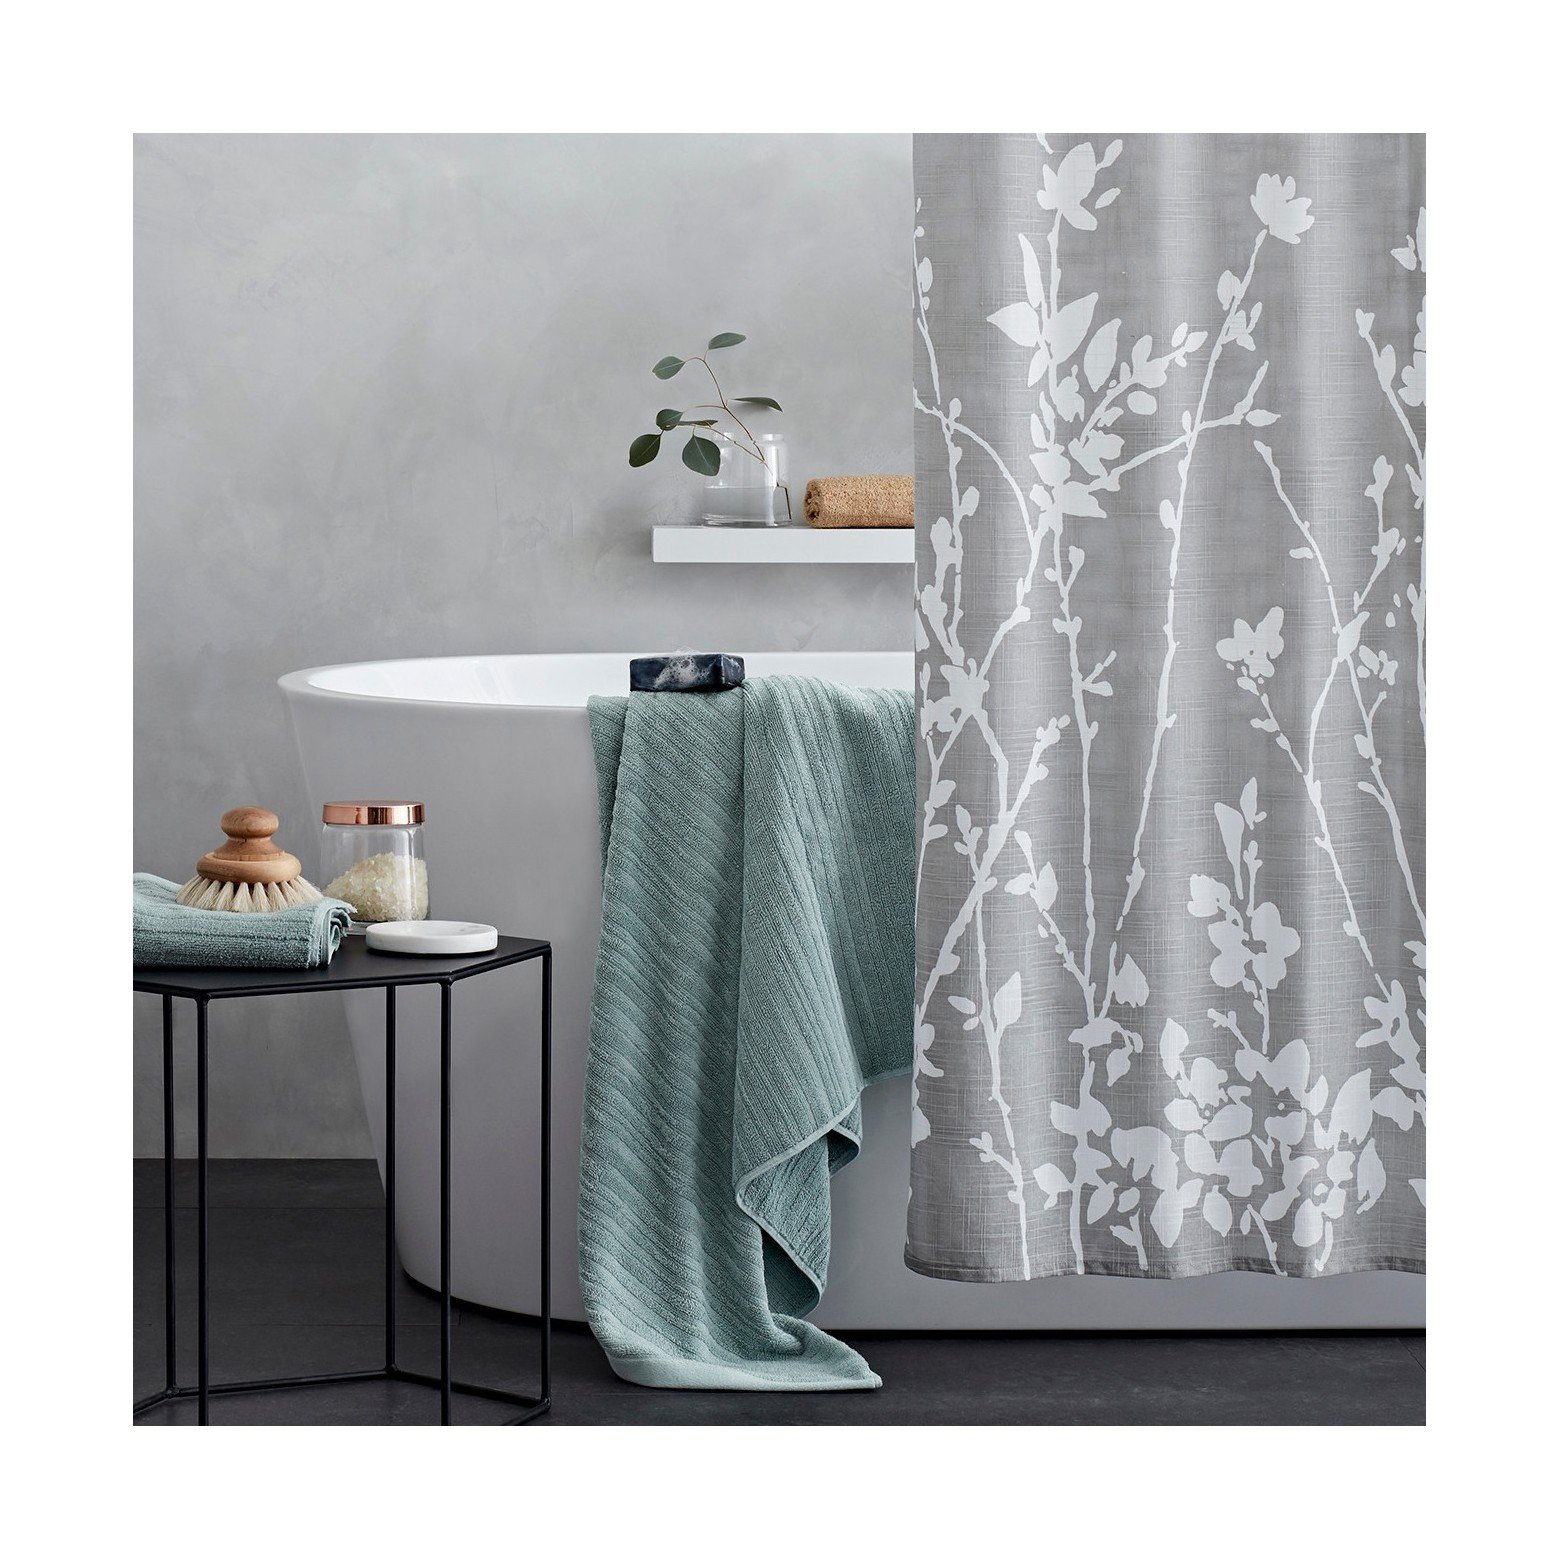 Project 62 Floral Print Shower Curtain Light Grey/White 72''x 72'' 100% Cotton